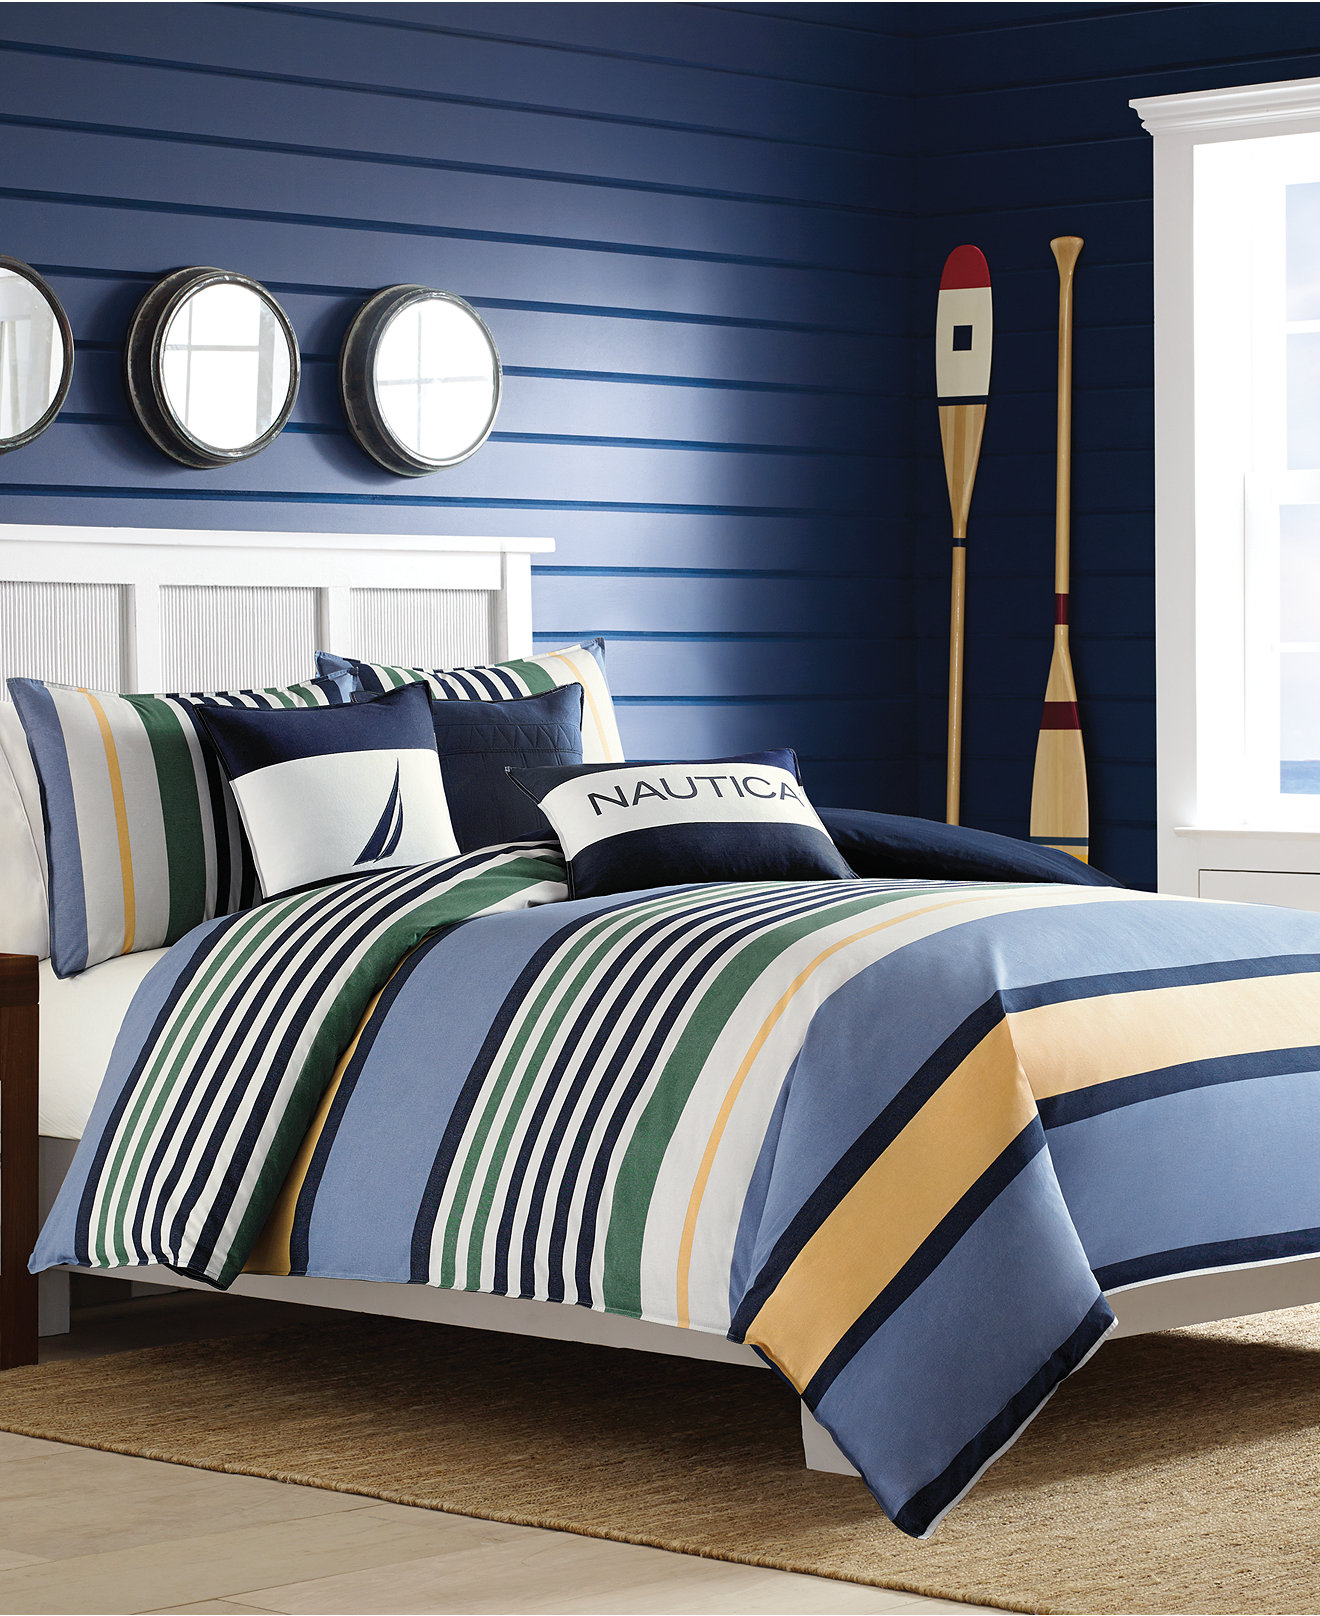 Nautica Bedroom Furniture Closeout Nautica Dover Bedding Collection Bedding Collections